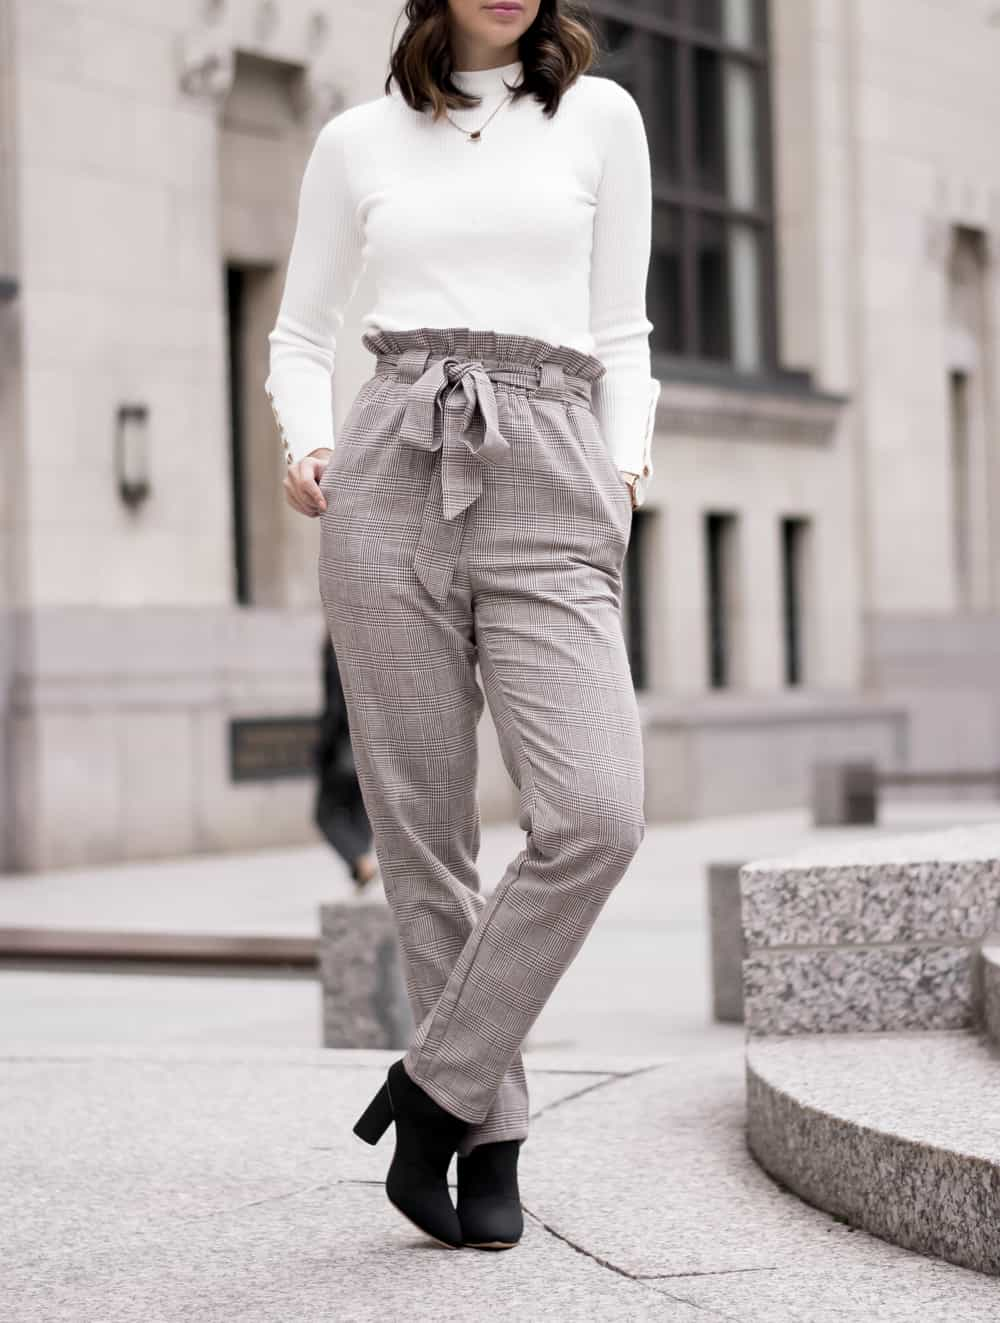 OOTD: fall look for 9-5 workwear